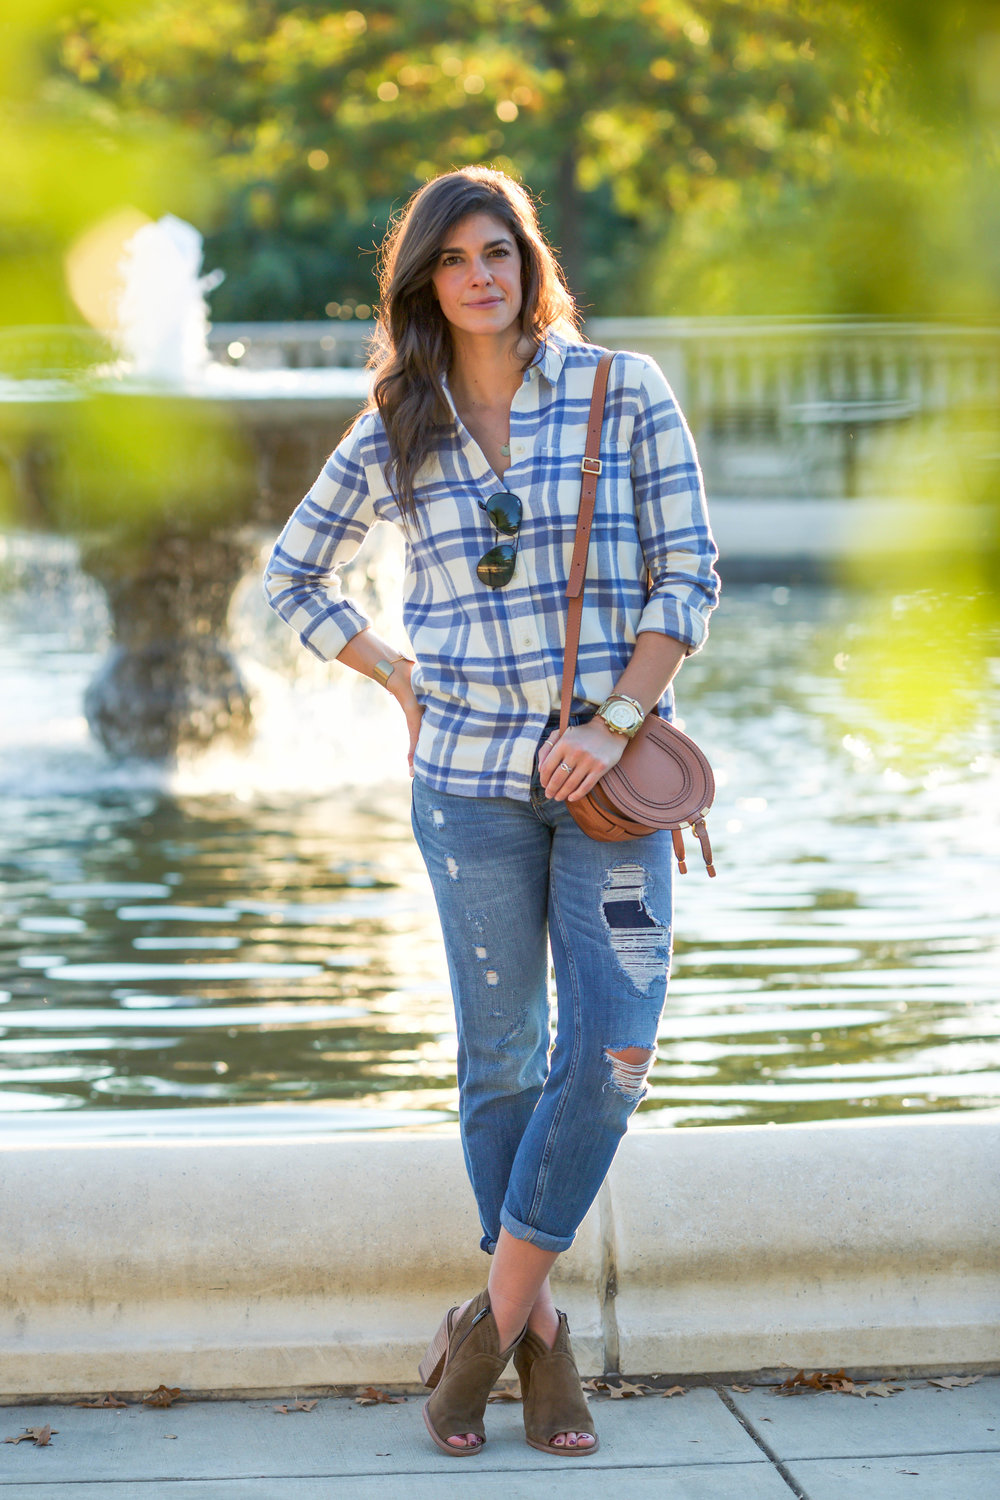 LaurenSchwaiger-Life-Style-Blog-Fall-Fashion-Flannel-Boyfriend-Jeans.jpg